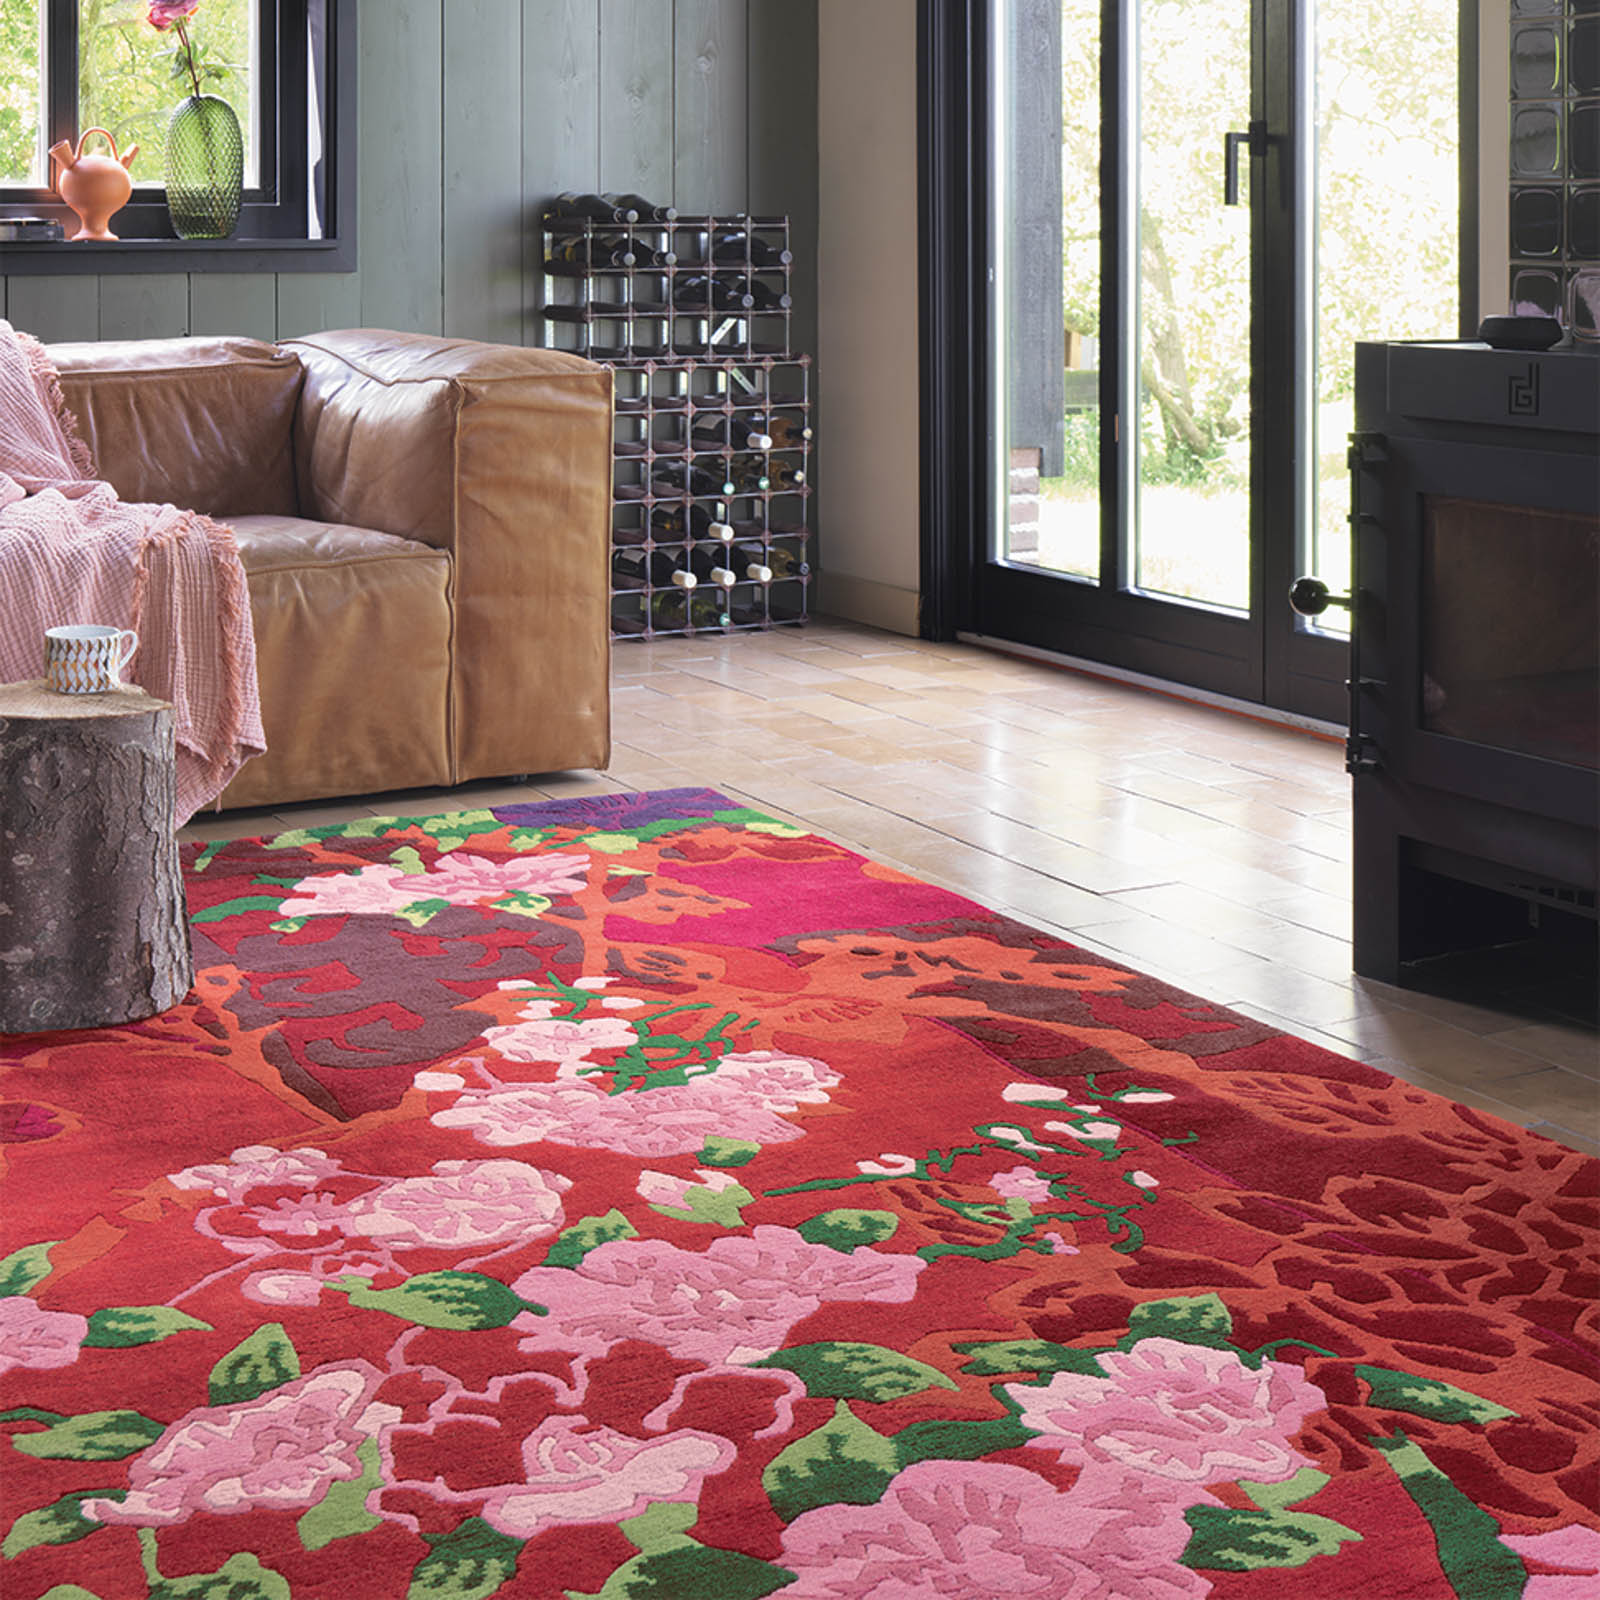 Kodari Garland 33300 Pink Red Hand Knotted Wool Rugs by Brink & Campman